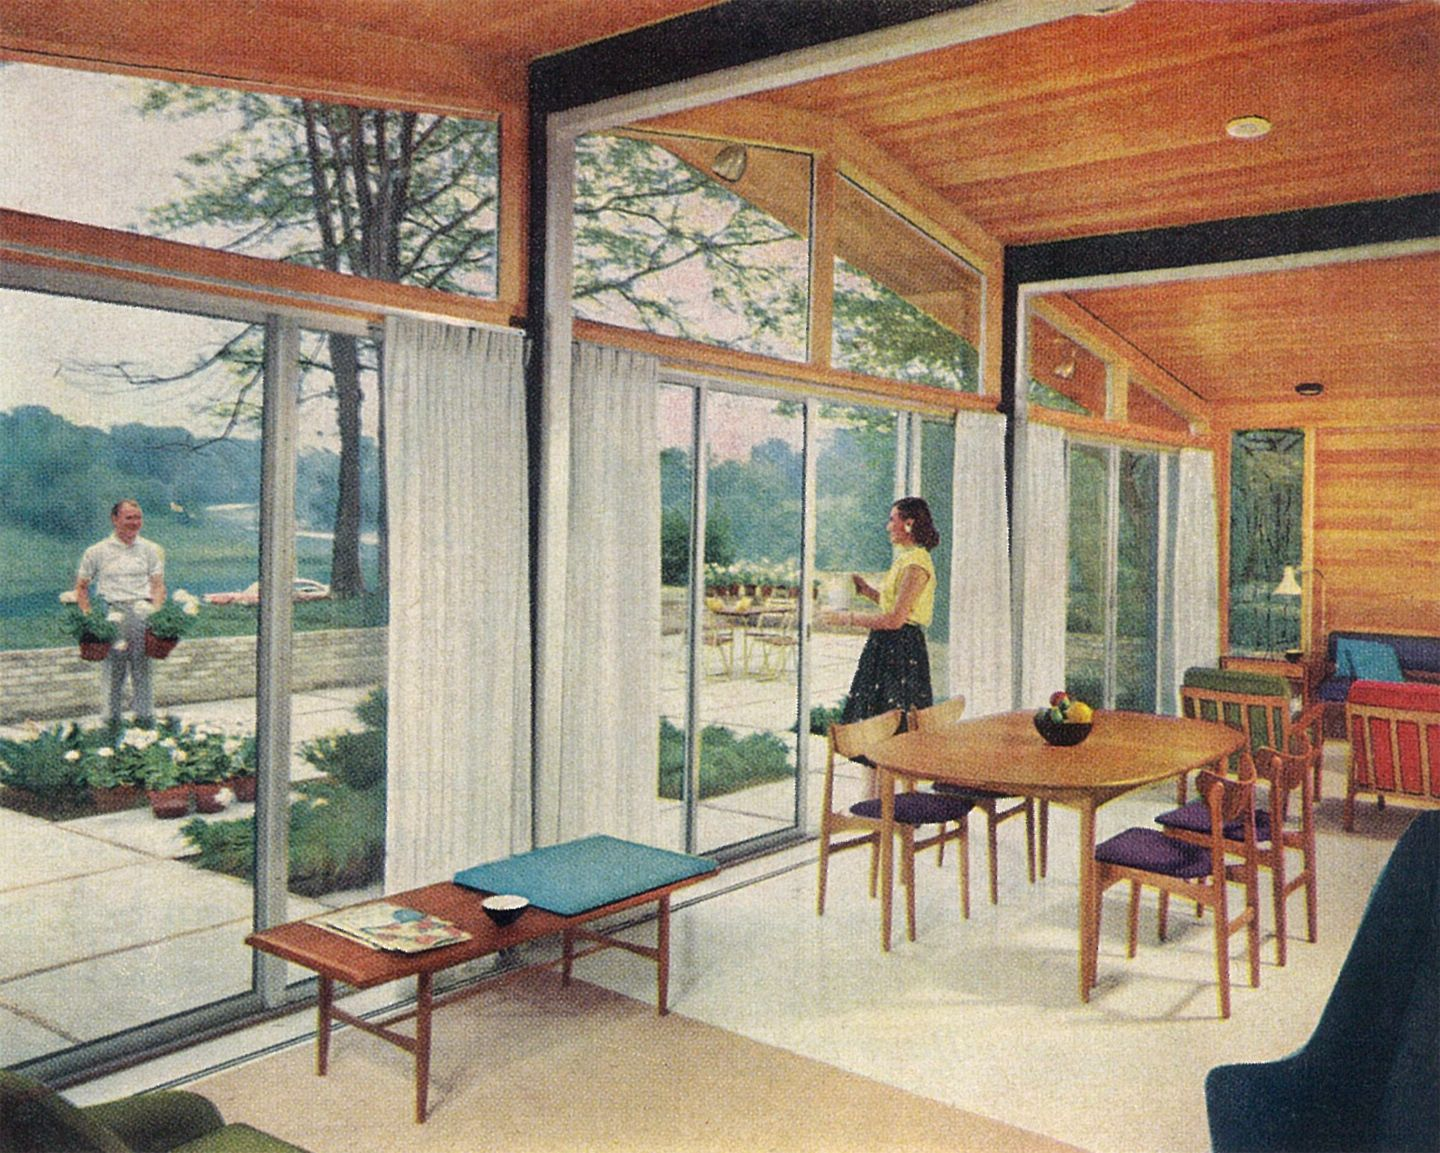 MIDCENTURIA Art Design and Decor from the MidCentury and beyond